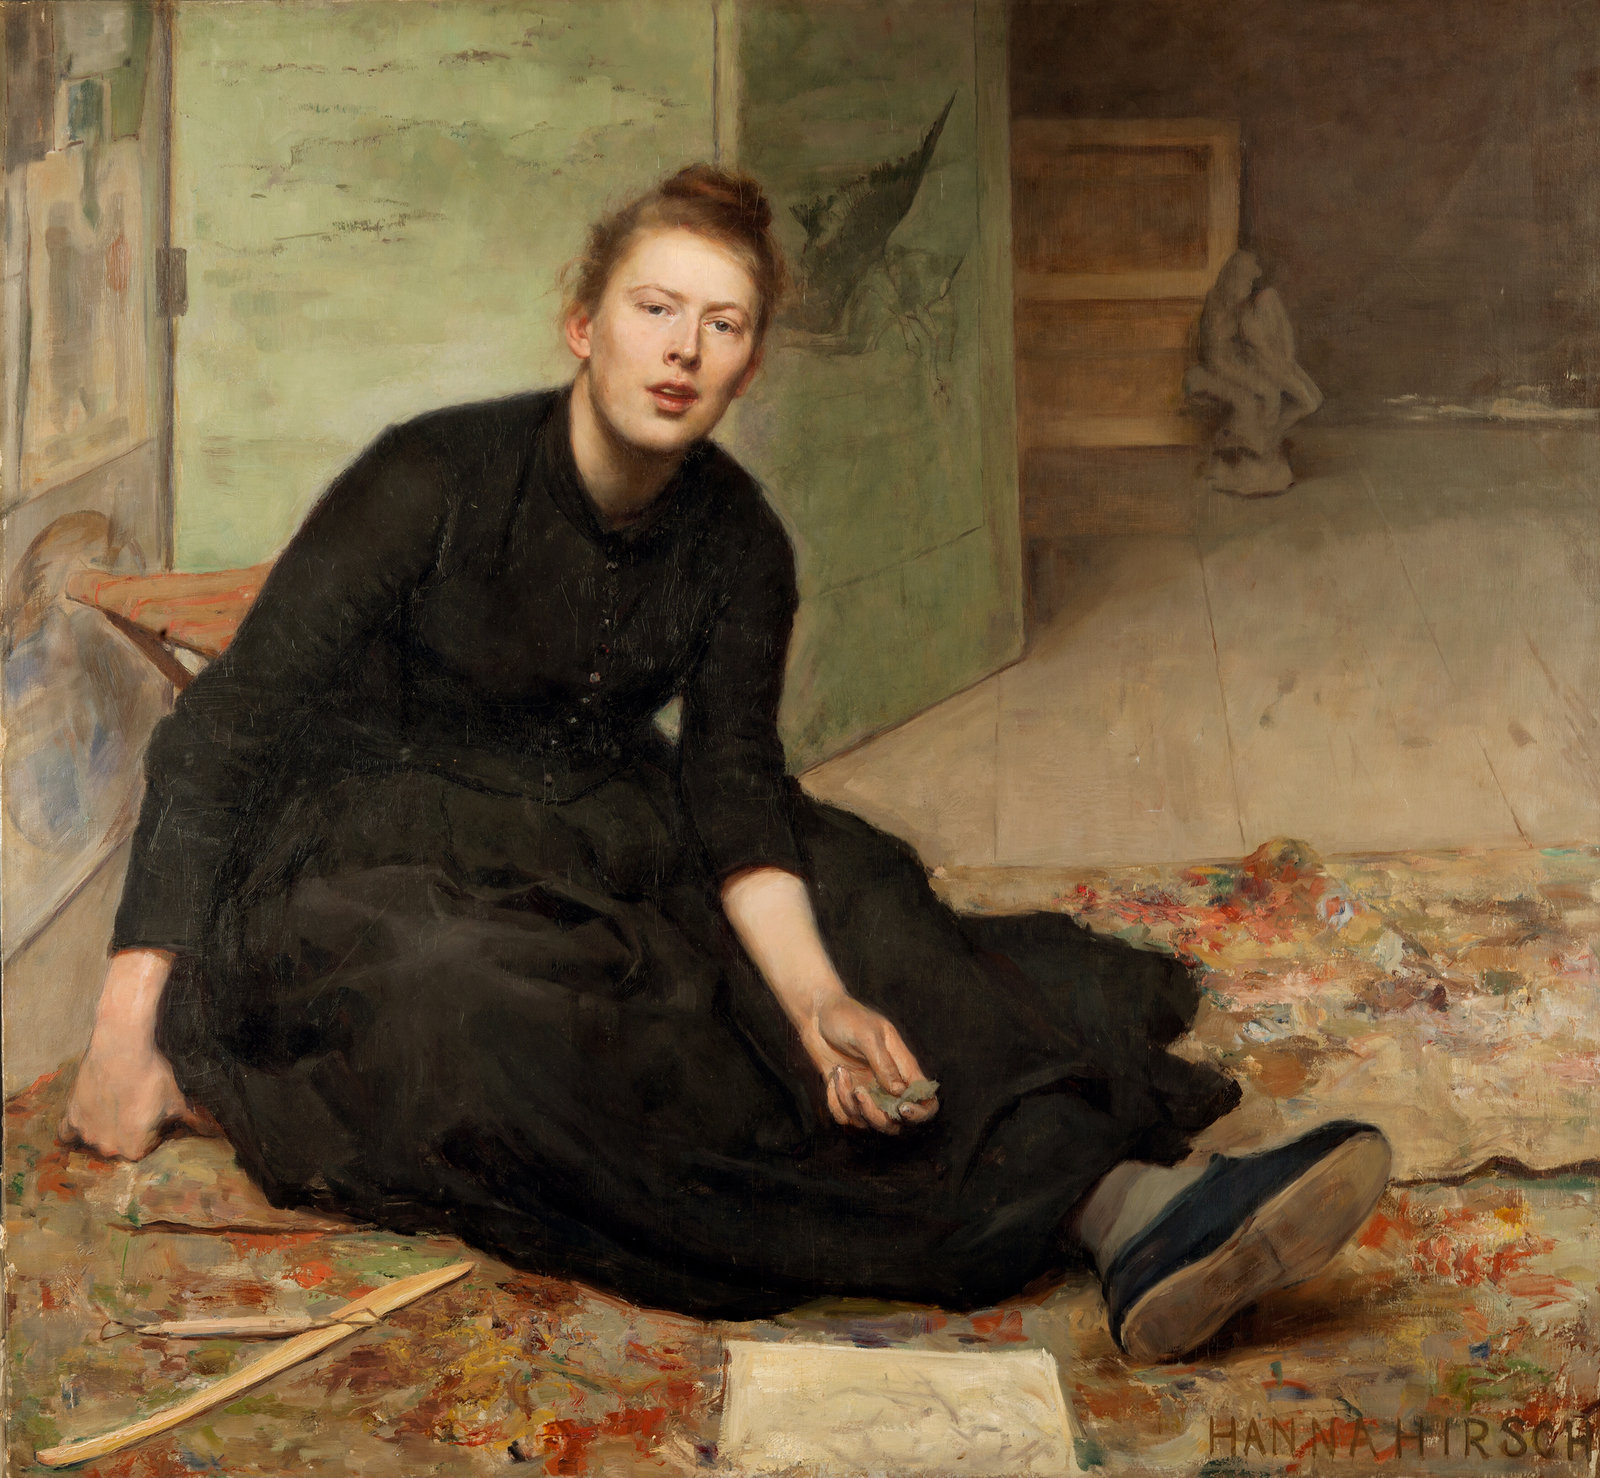 The Artist Venny Soldan-Brofeldt, 1886-87, Hanna Pauli, Gothenburg Museum of Art, CC BY-NC